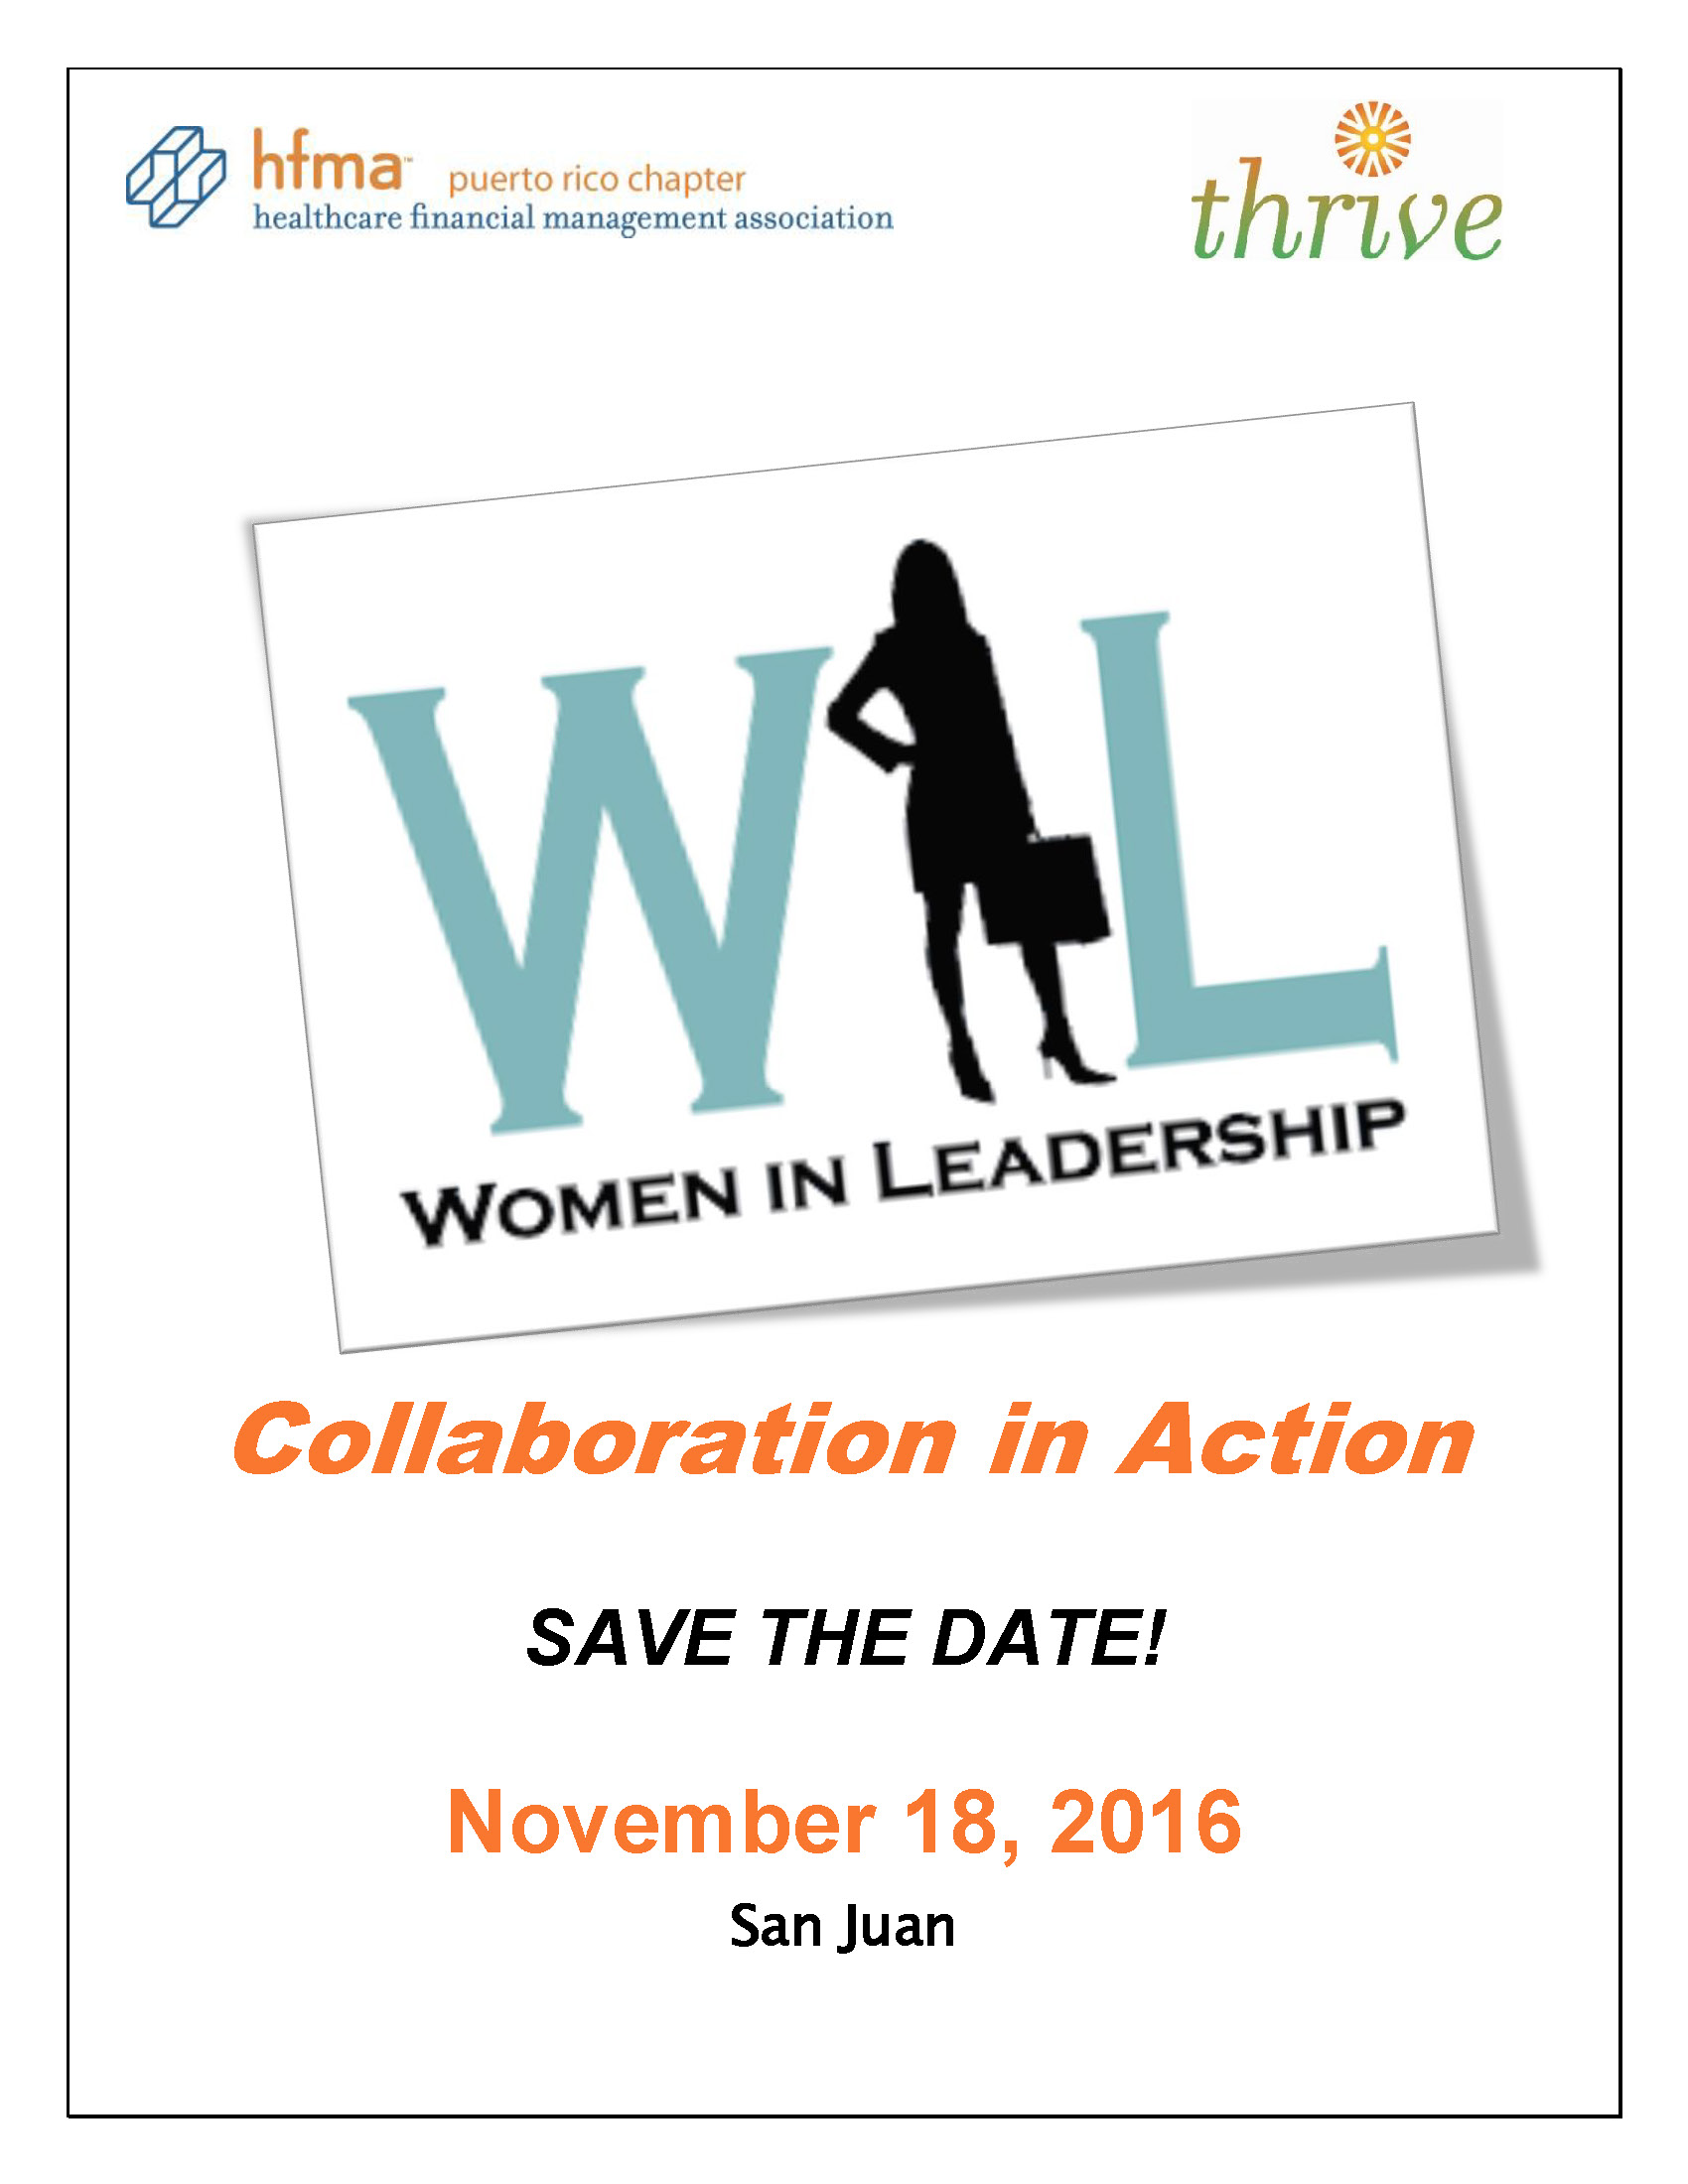 SAVE THE DATE WOMAN IN LEADERSHIP